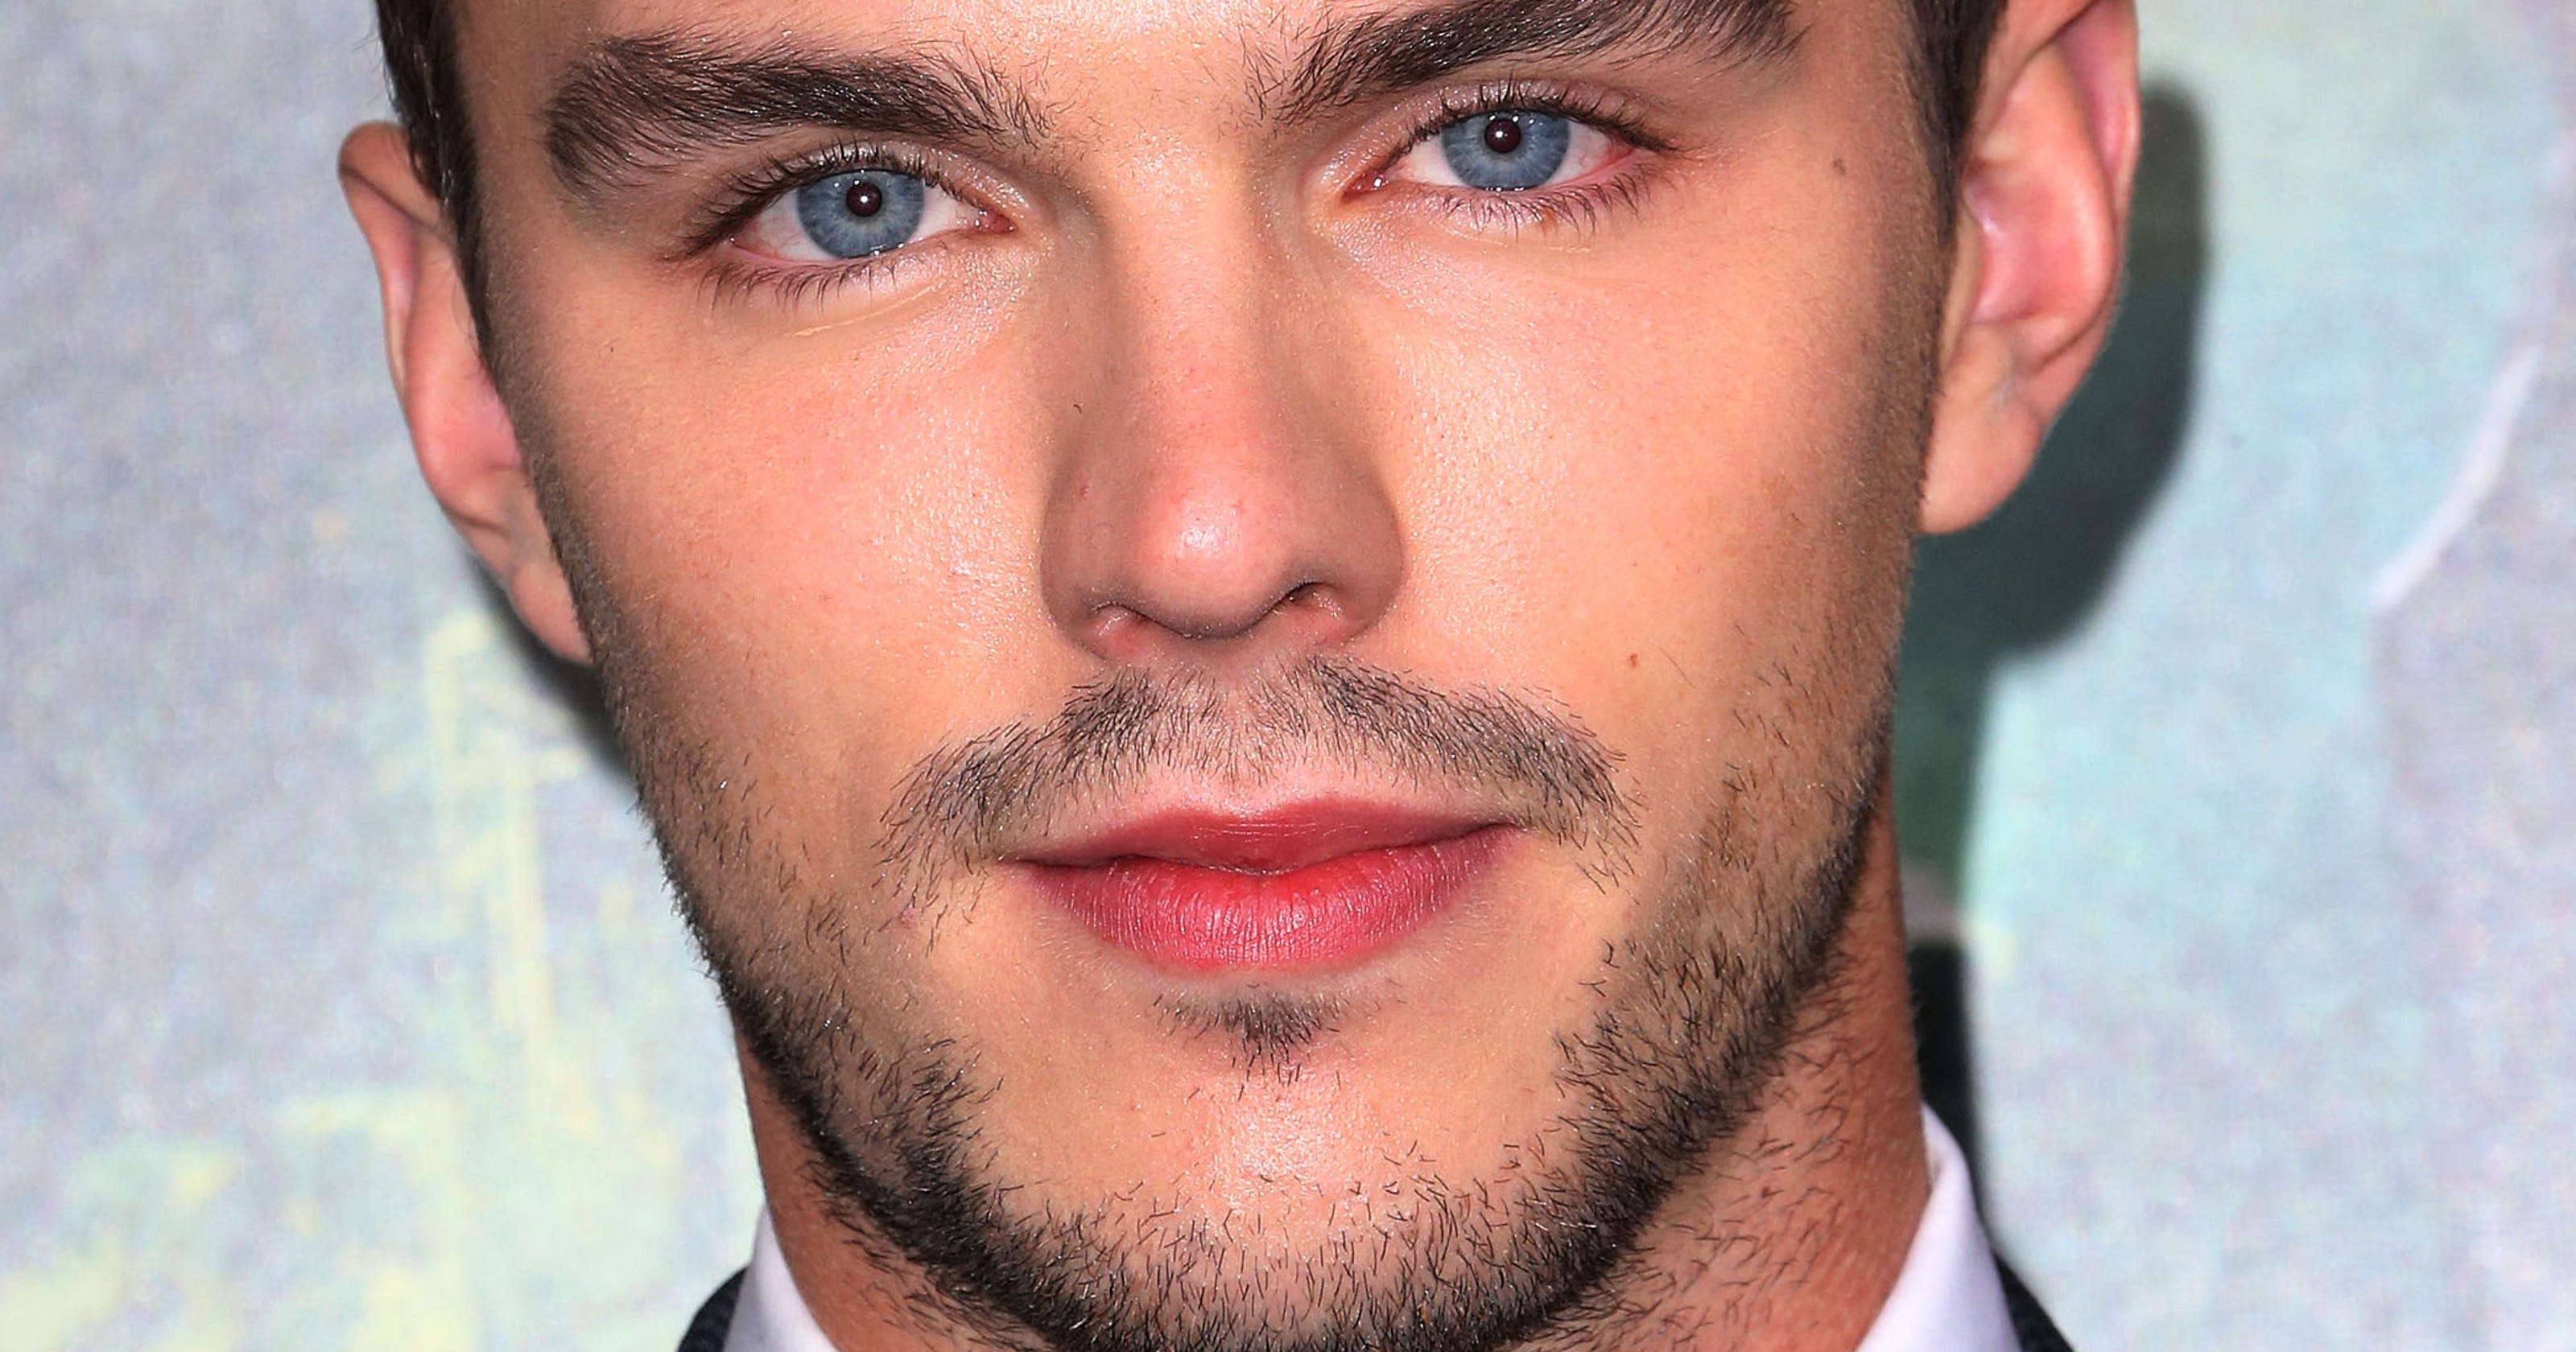 Nicholas Hoult goes from 'About a Boy' to 'It' guy